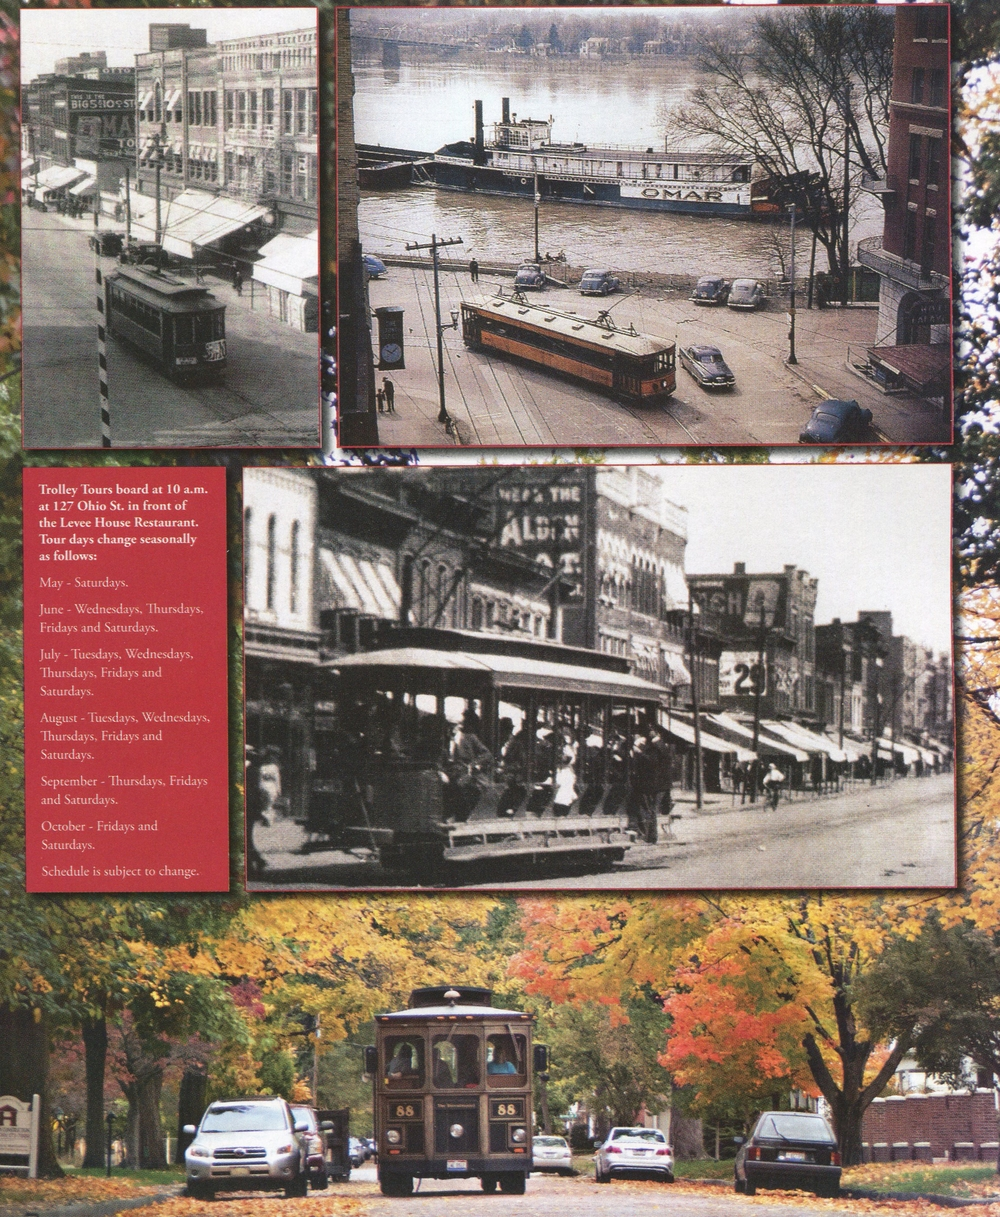 Marietta-Ohio-Visitors-Guide-2015.jpg